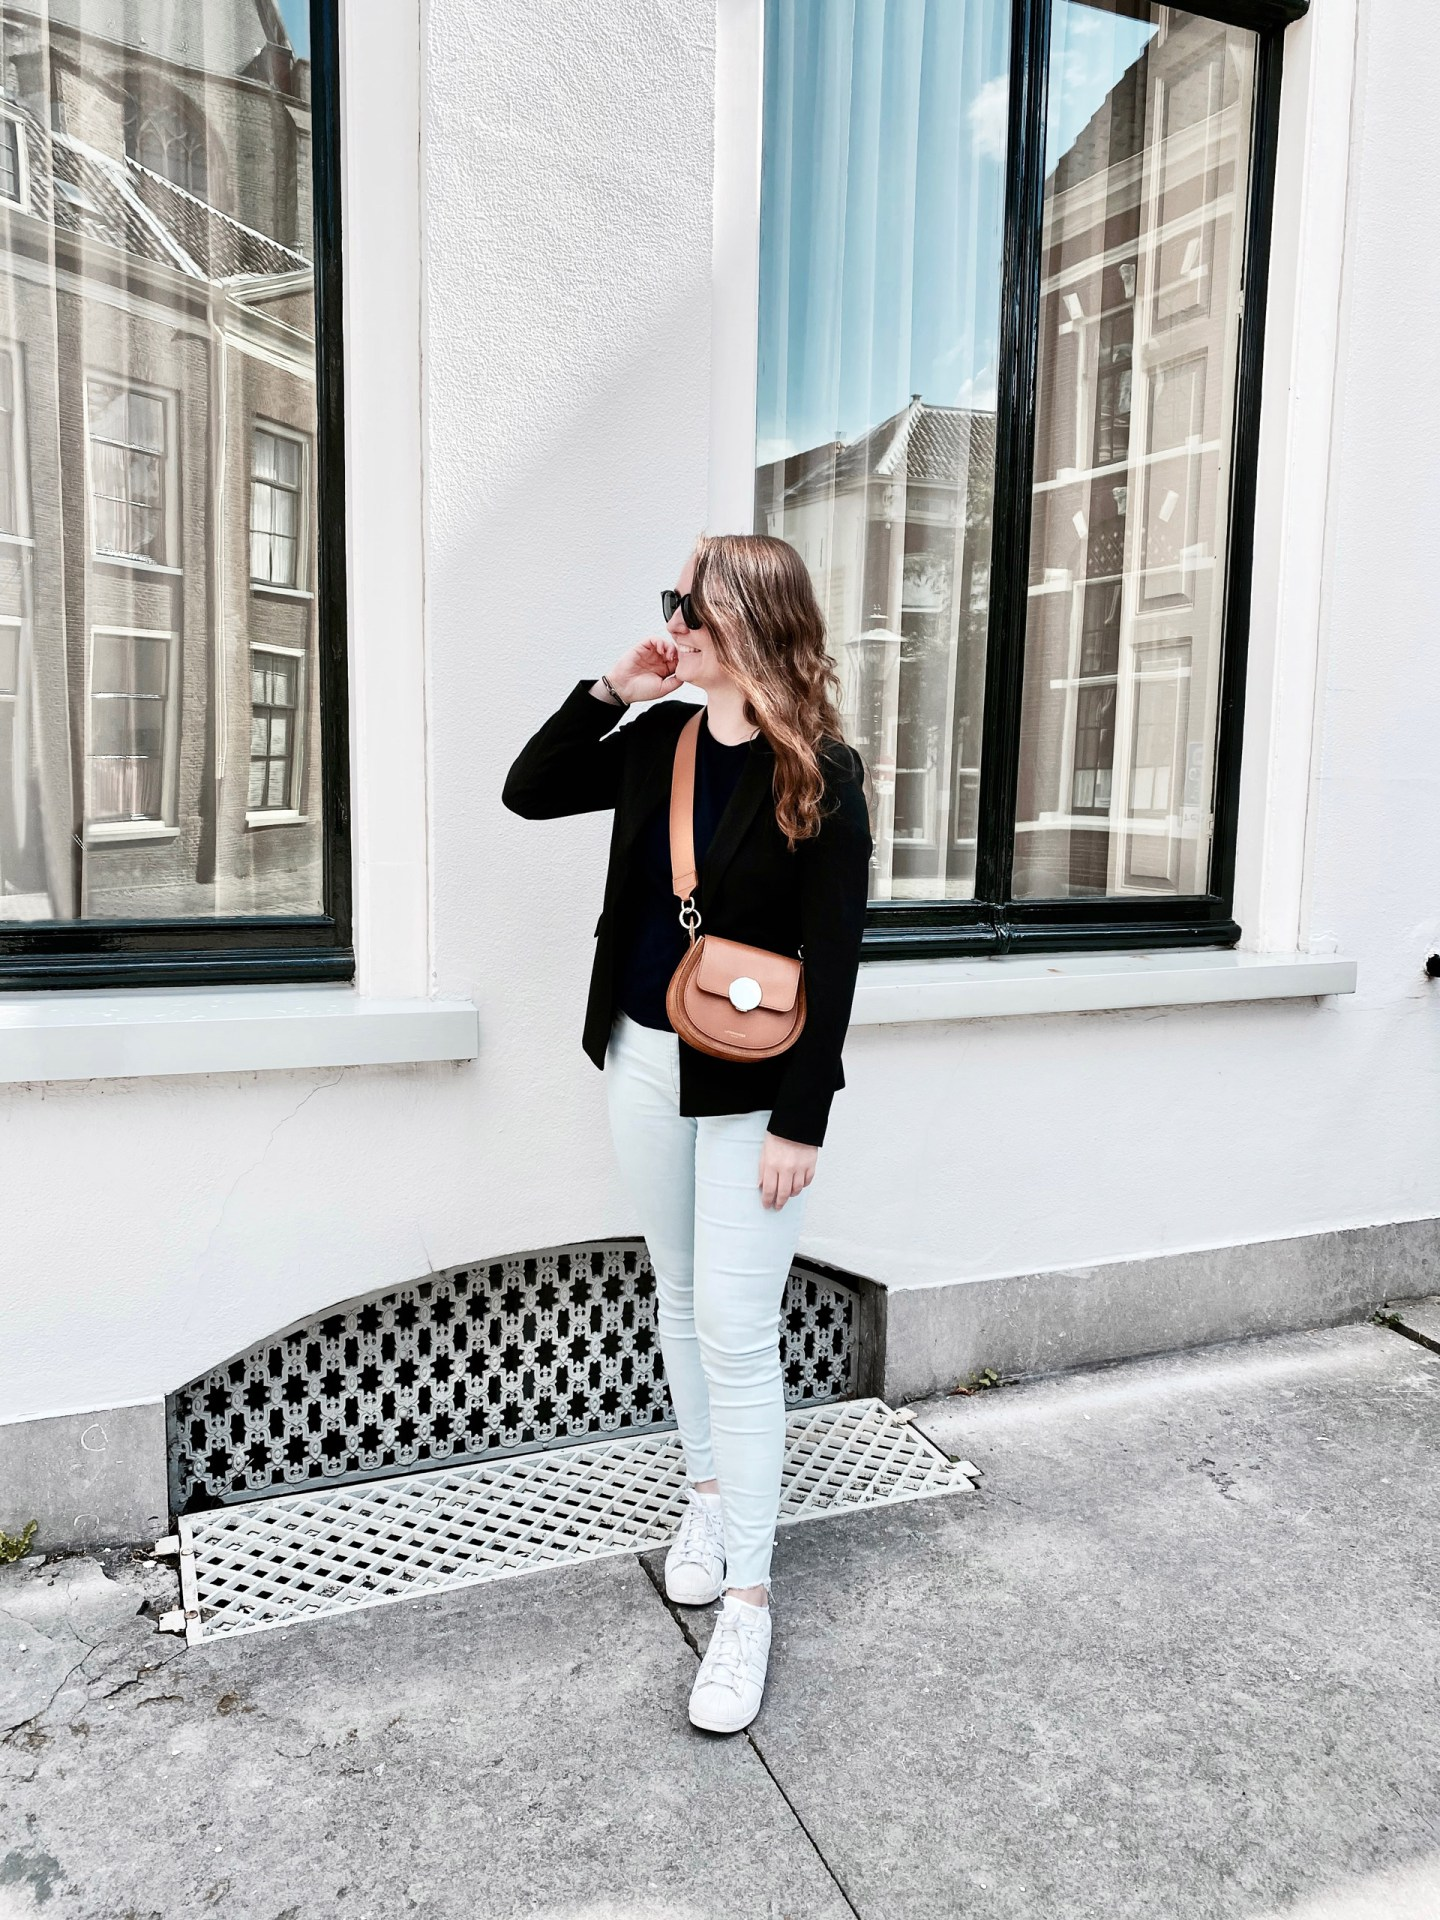 From Summer To Fall With A Blazer | Outfit